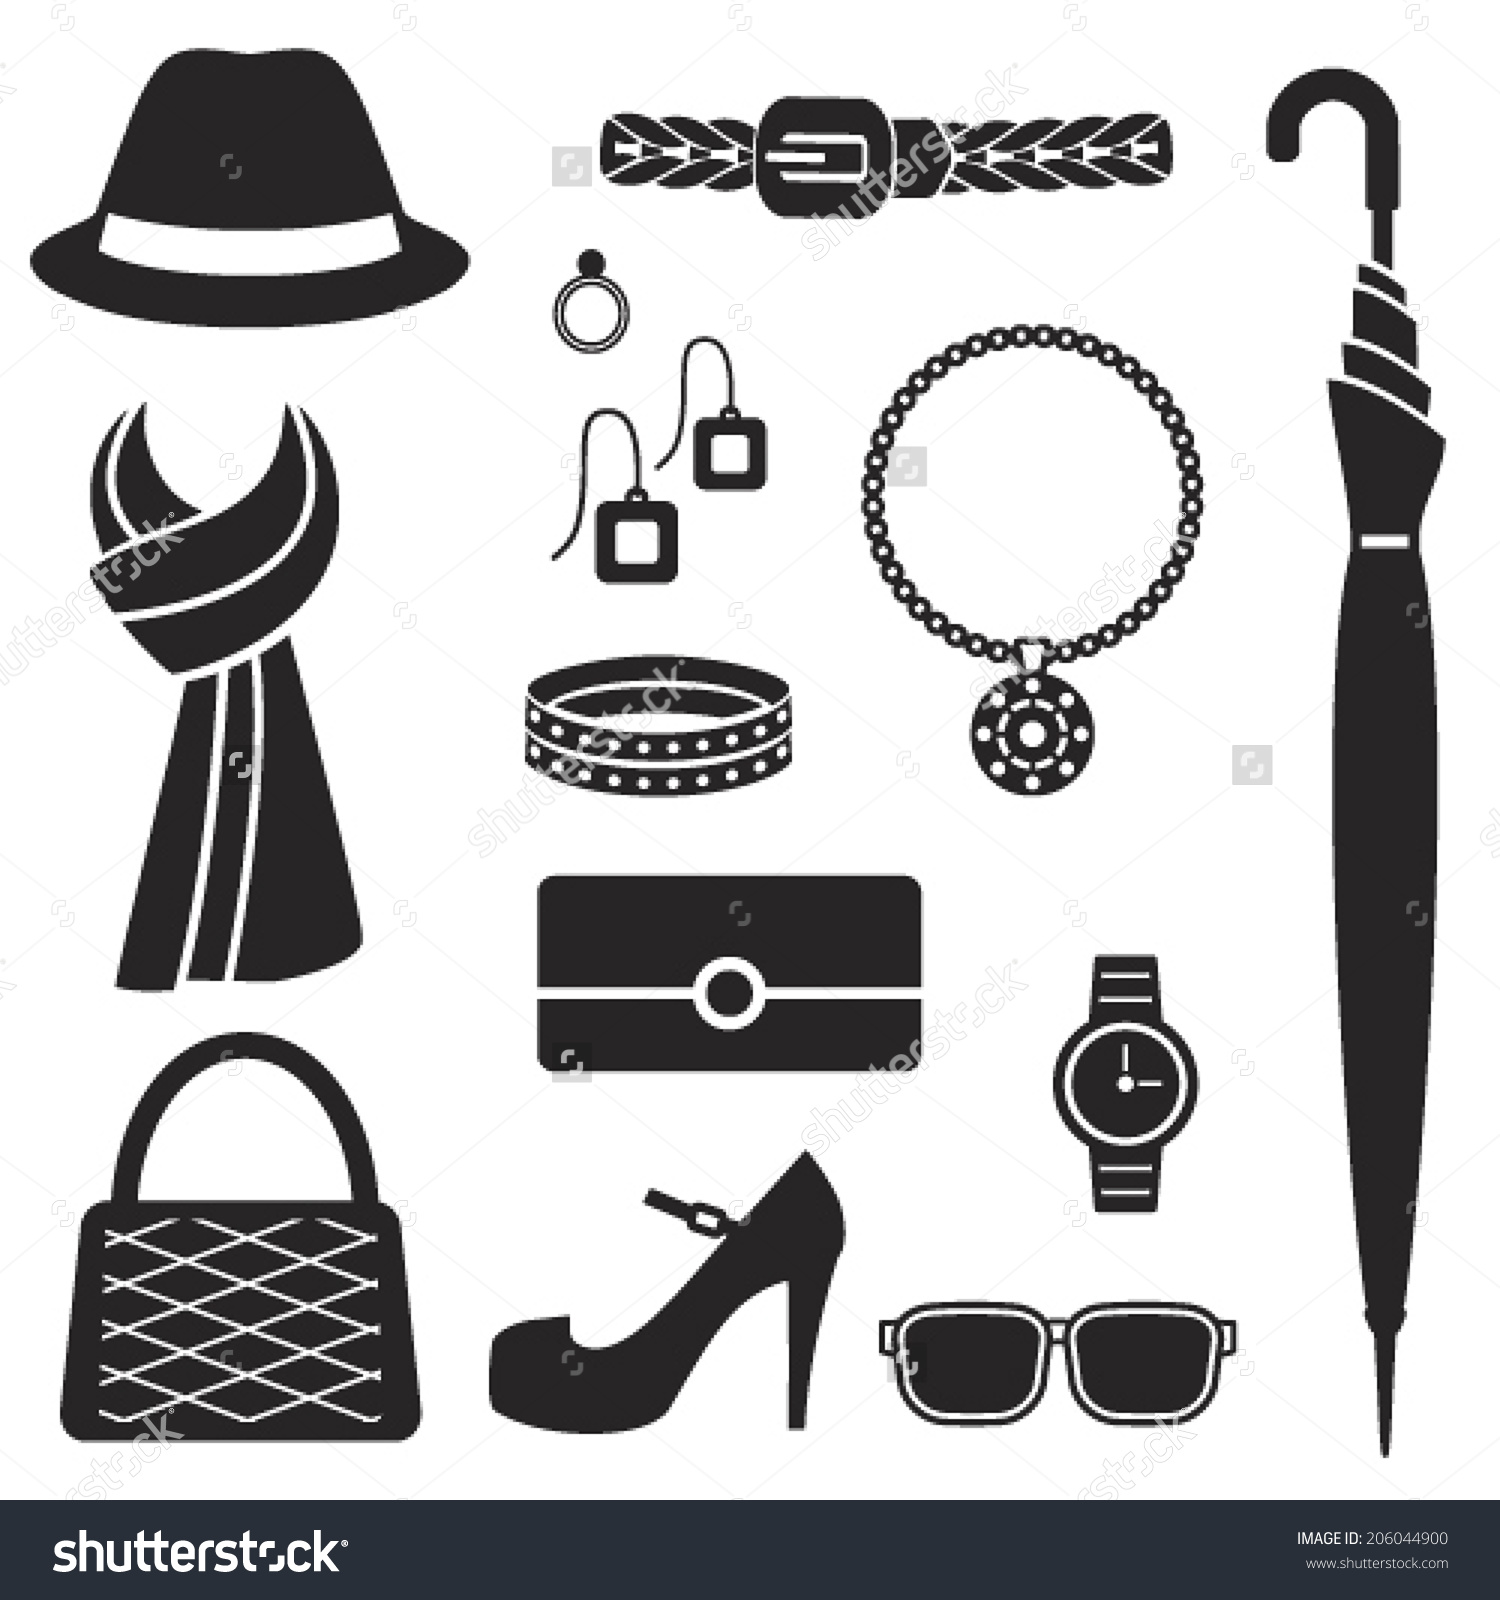 Fashion accessories clipart.